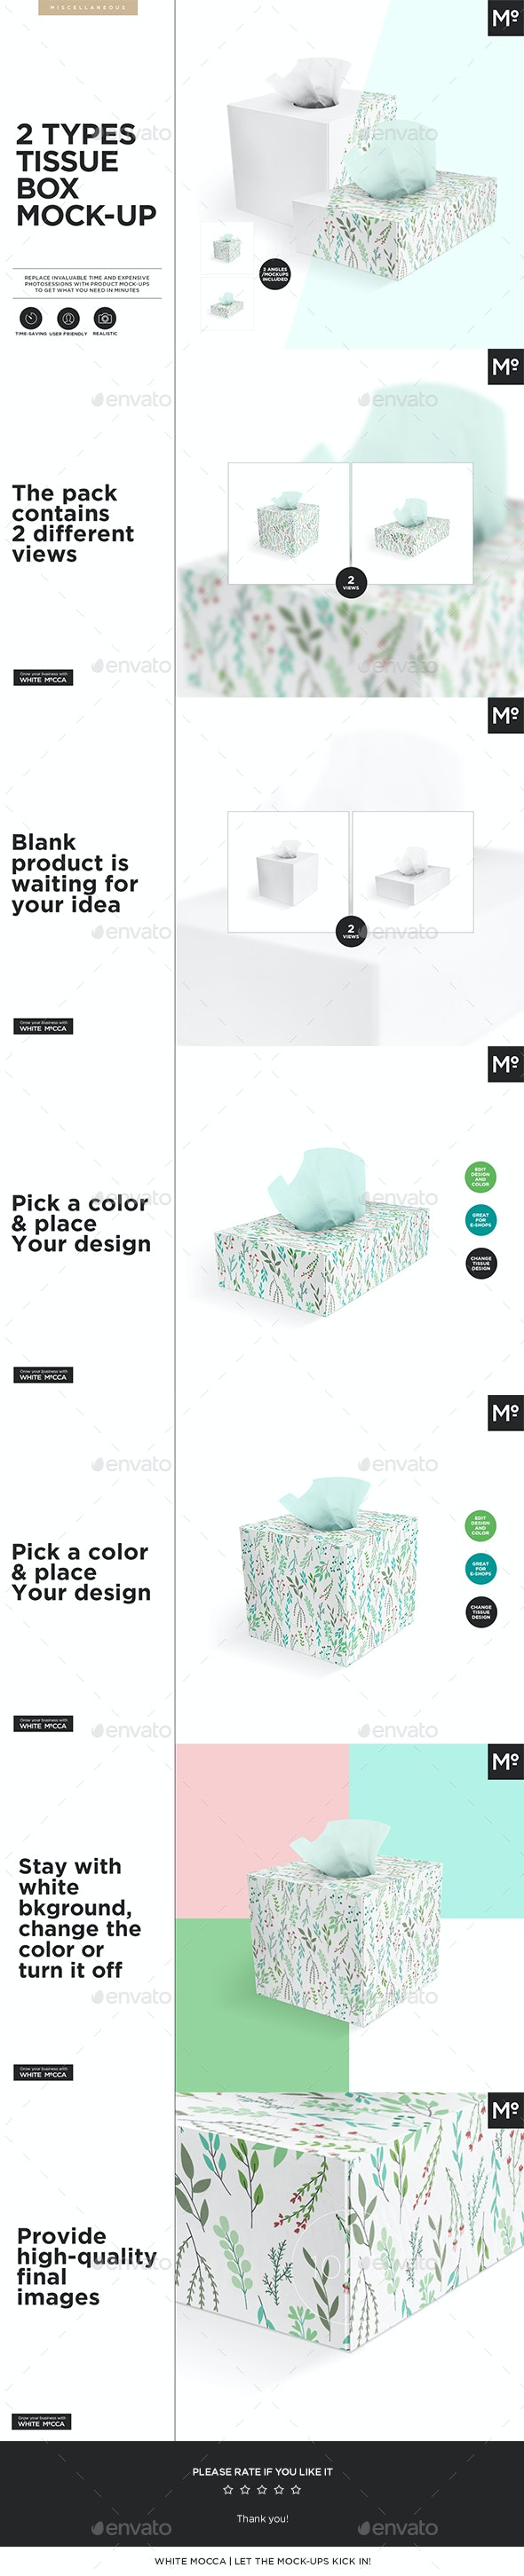 2 Types Tissue Box Mock-up - Miscellaneous Print